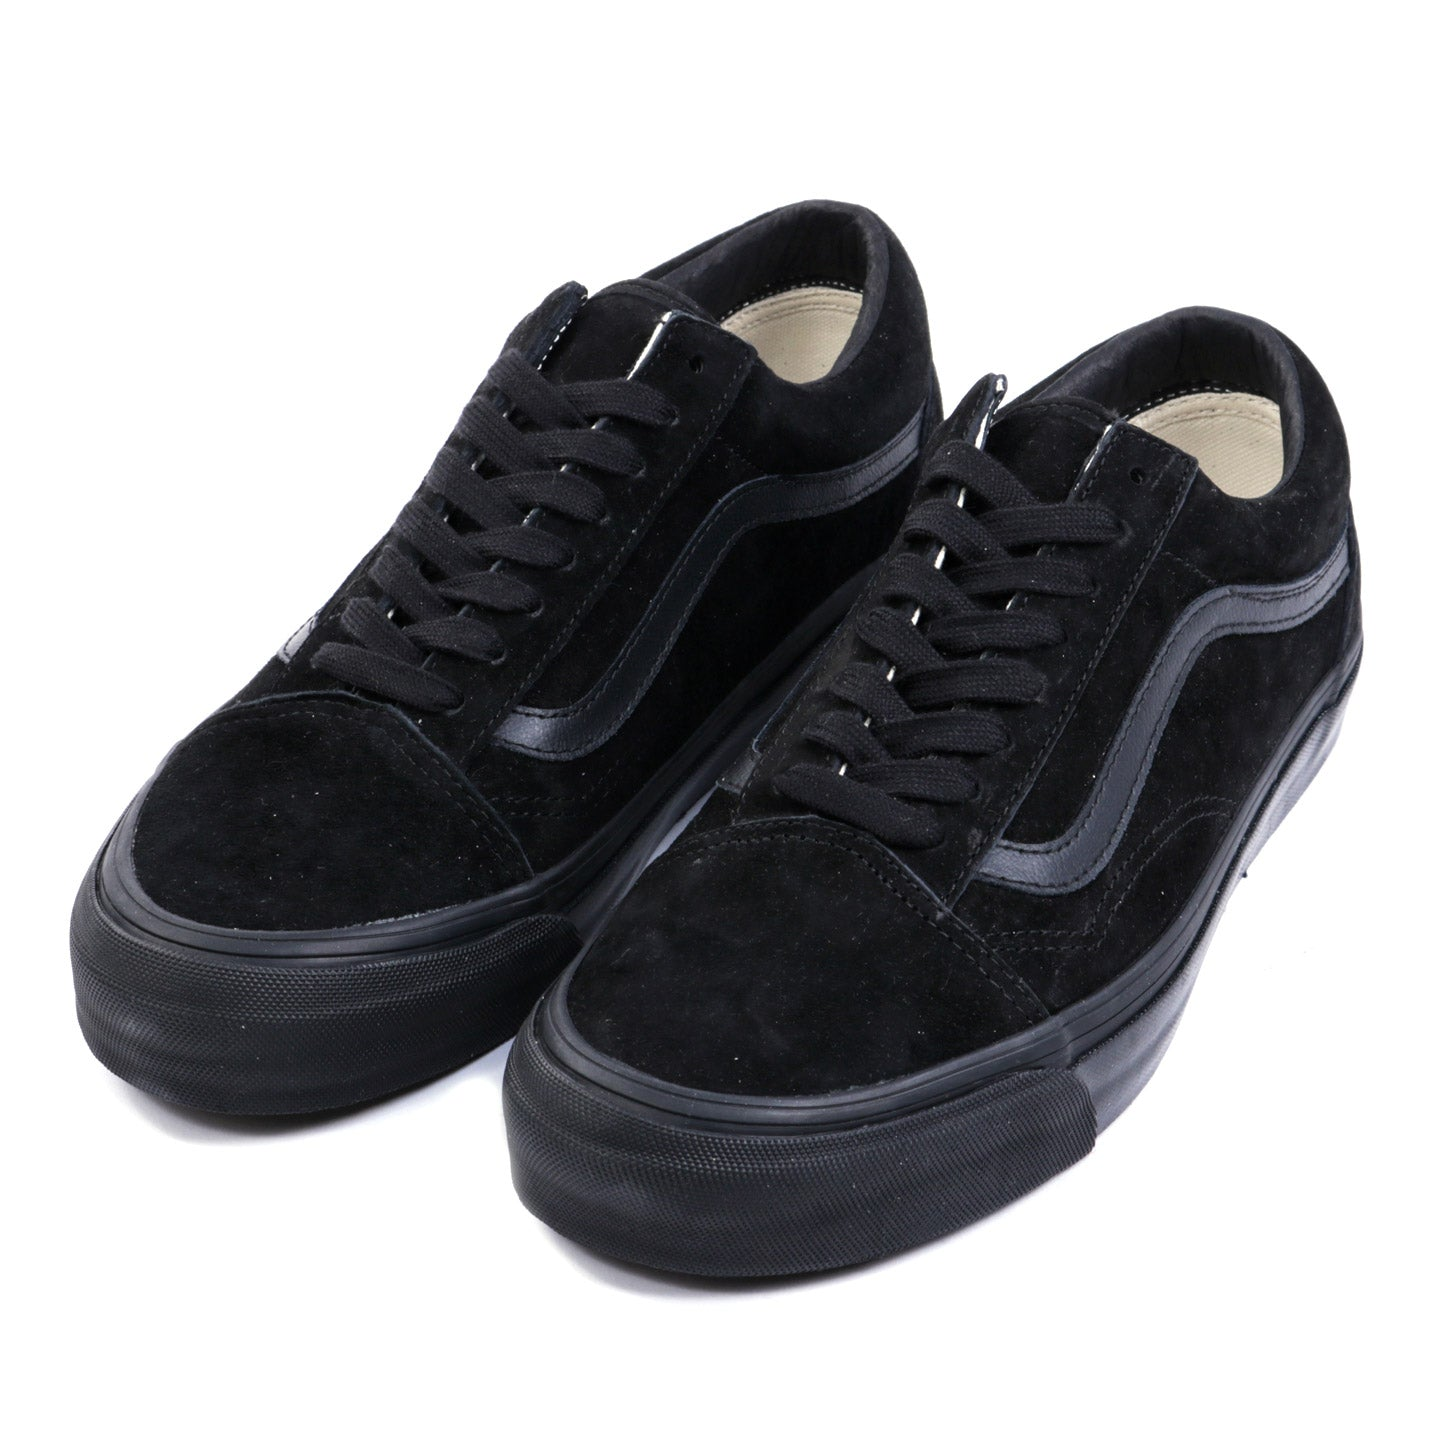 VAULT BY VANS OG OLD SKOOL LX BLACK SUEDE